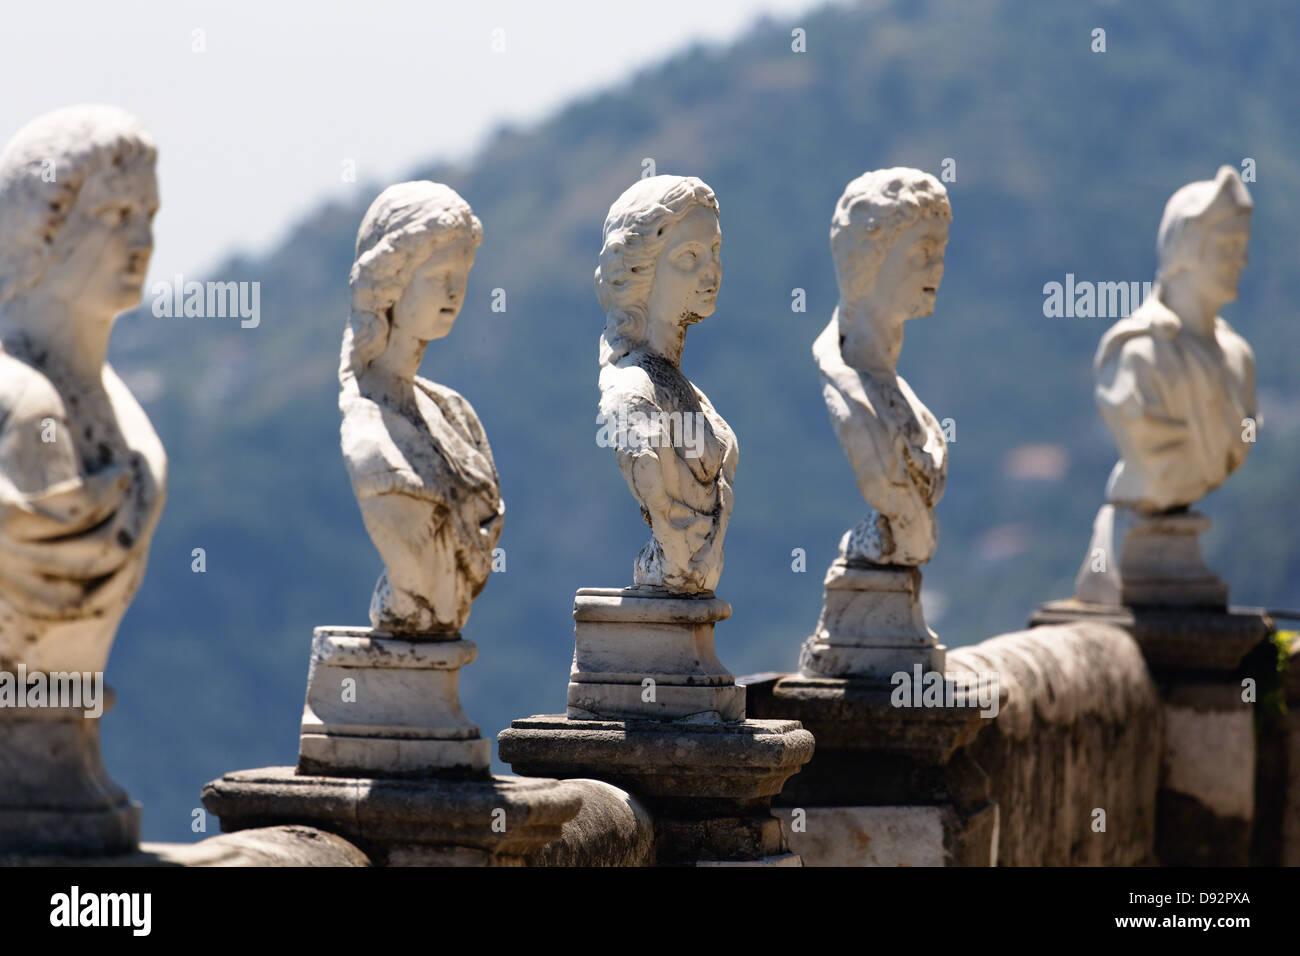 Row of Busts Sculptures on a Ledge, Terrace of Infinity, Villa Cimbrone, Ravello, Campania, Italy - Stock Image